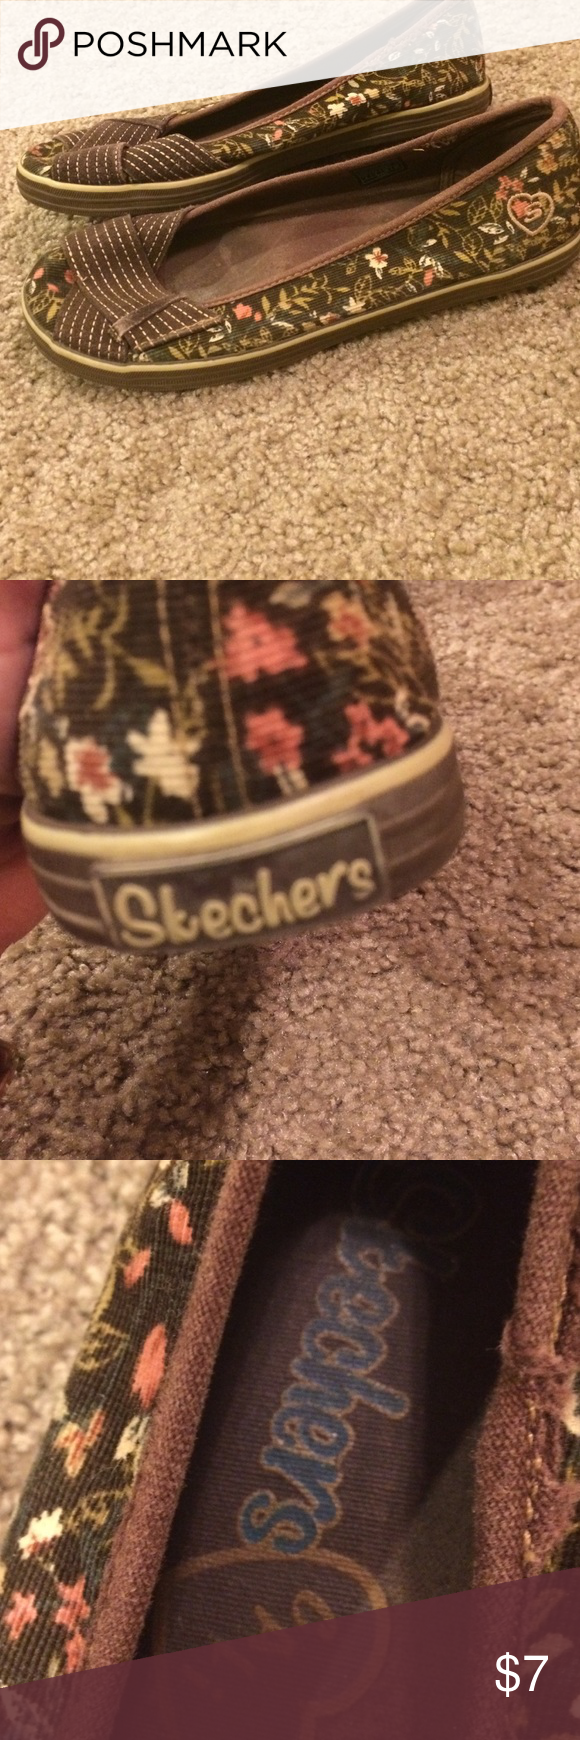 Skechers Cali shoes The upper sole of these shoes have a pretty floral design. They are corduroy on the upper sole. They are still in great condition Skechers Shoes Flats & Loafers